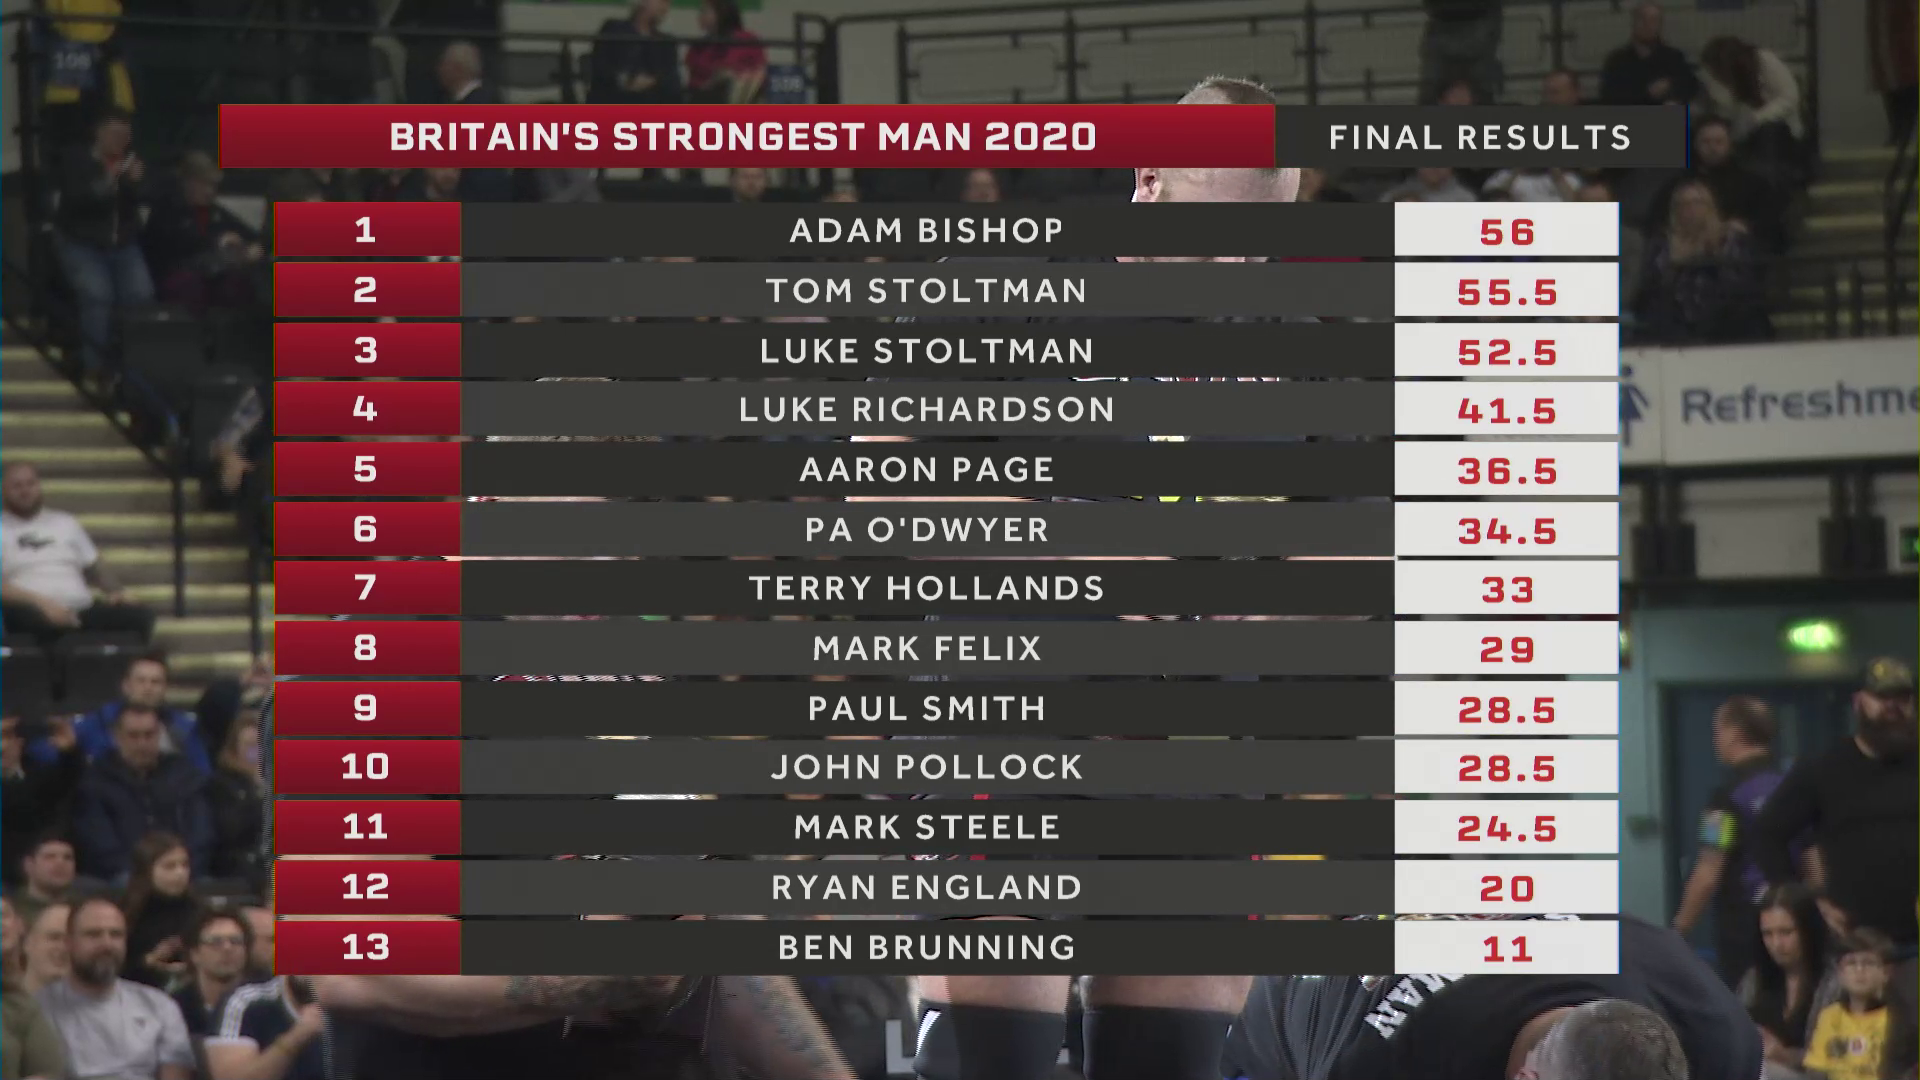 Britains strongest man results